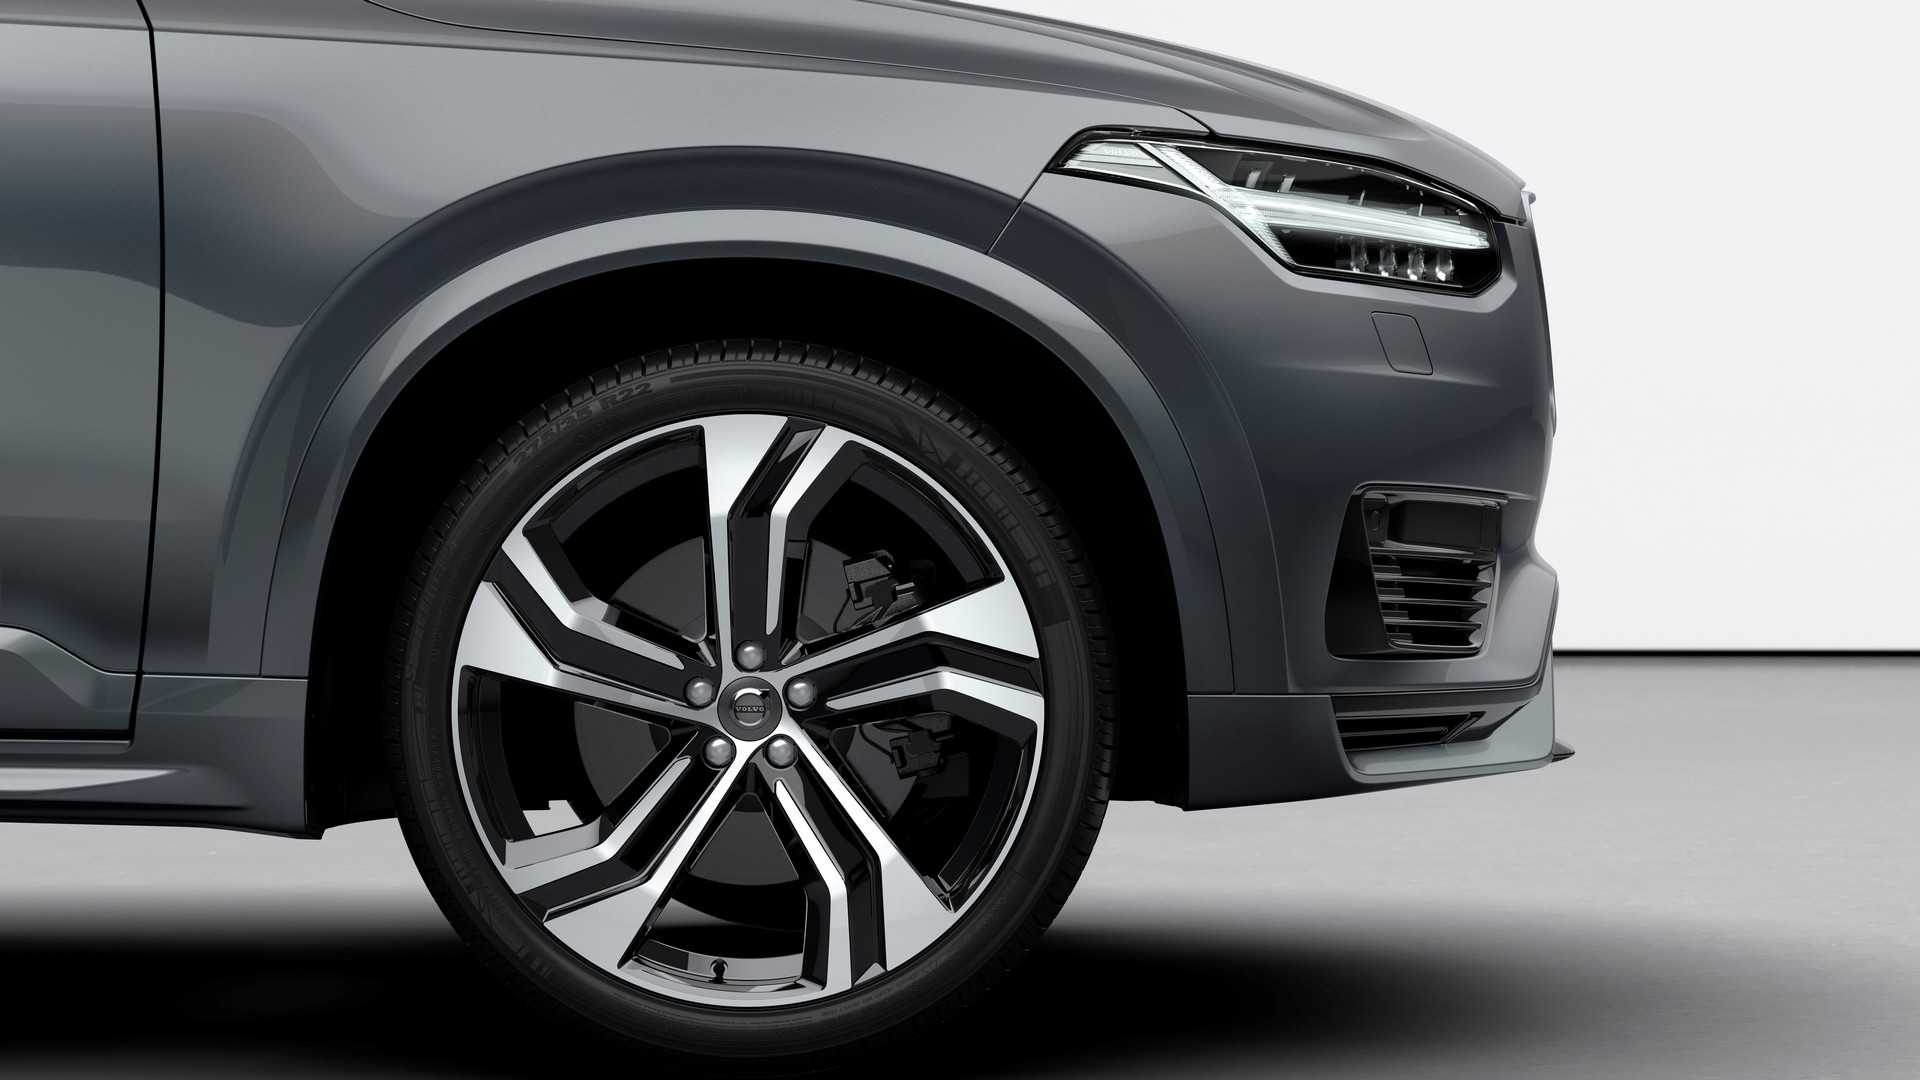 63 All New Volvo Xc90 Facelift 2019 Configurations